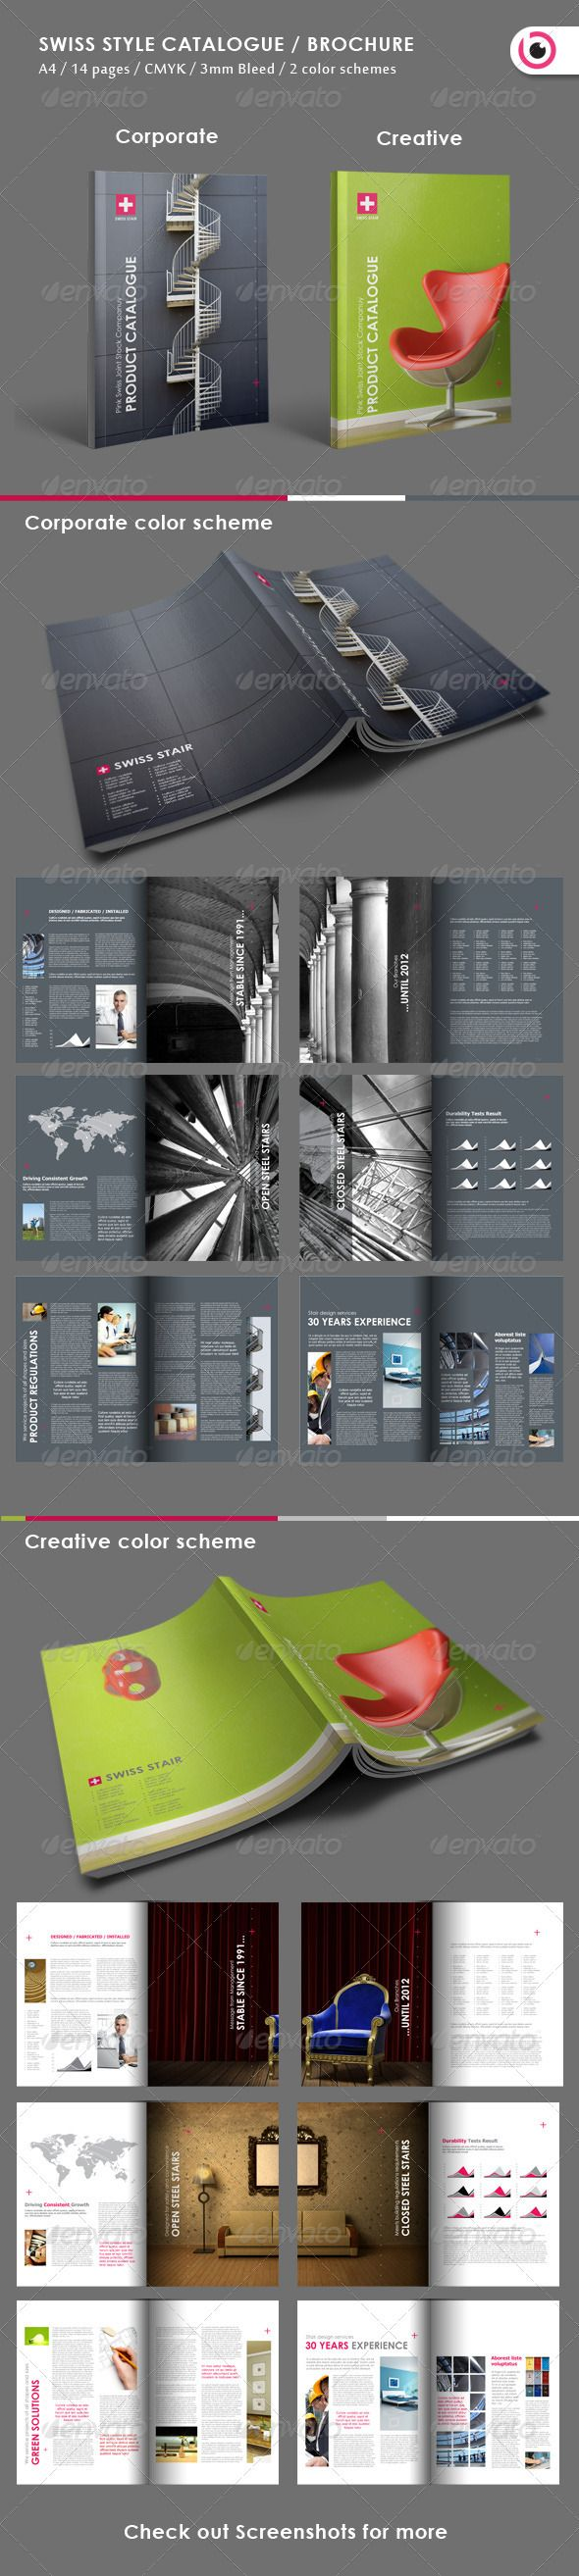 swiss style catalogue brochure graphicriver item for sale brochure design templatesleaflet